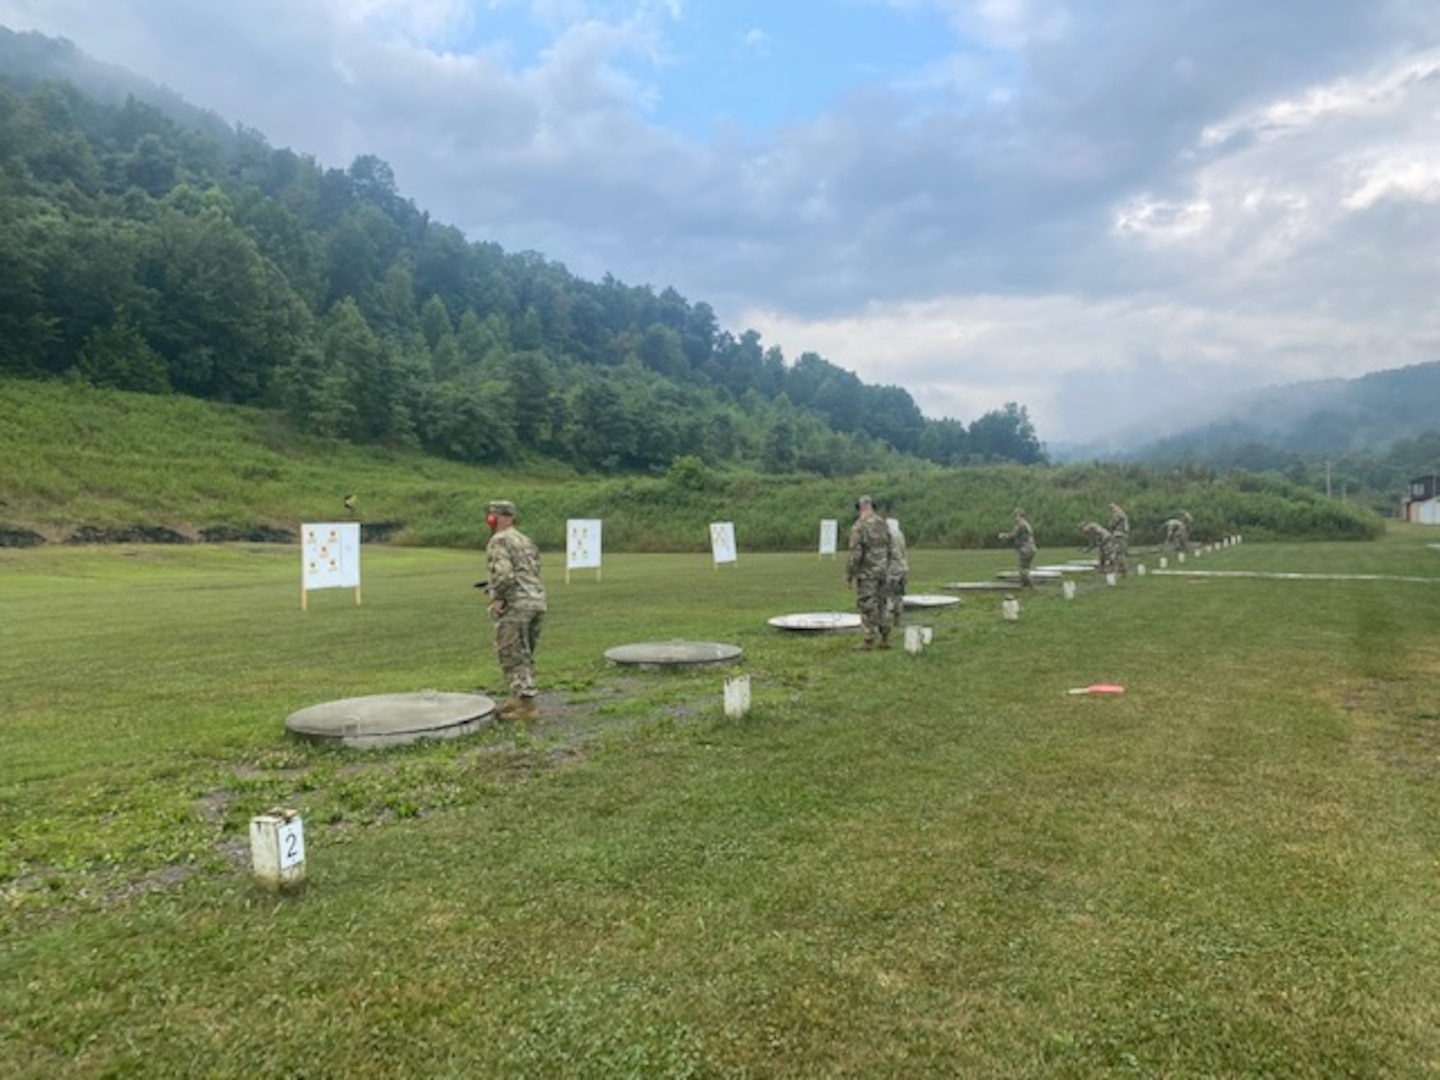 With the backdrop of the Appalachian Mountains, the District of Columbia National Guard's Multi-Agency Augmentation Command conducted annual training at Camp Dawson, West Virginia, August 2-8, to ensure readiness and increase their capabilities to support their mission better.